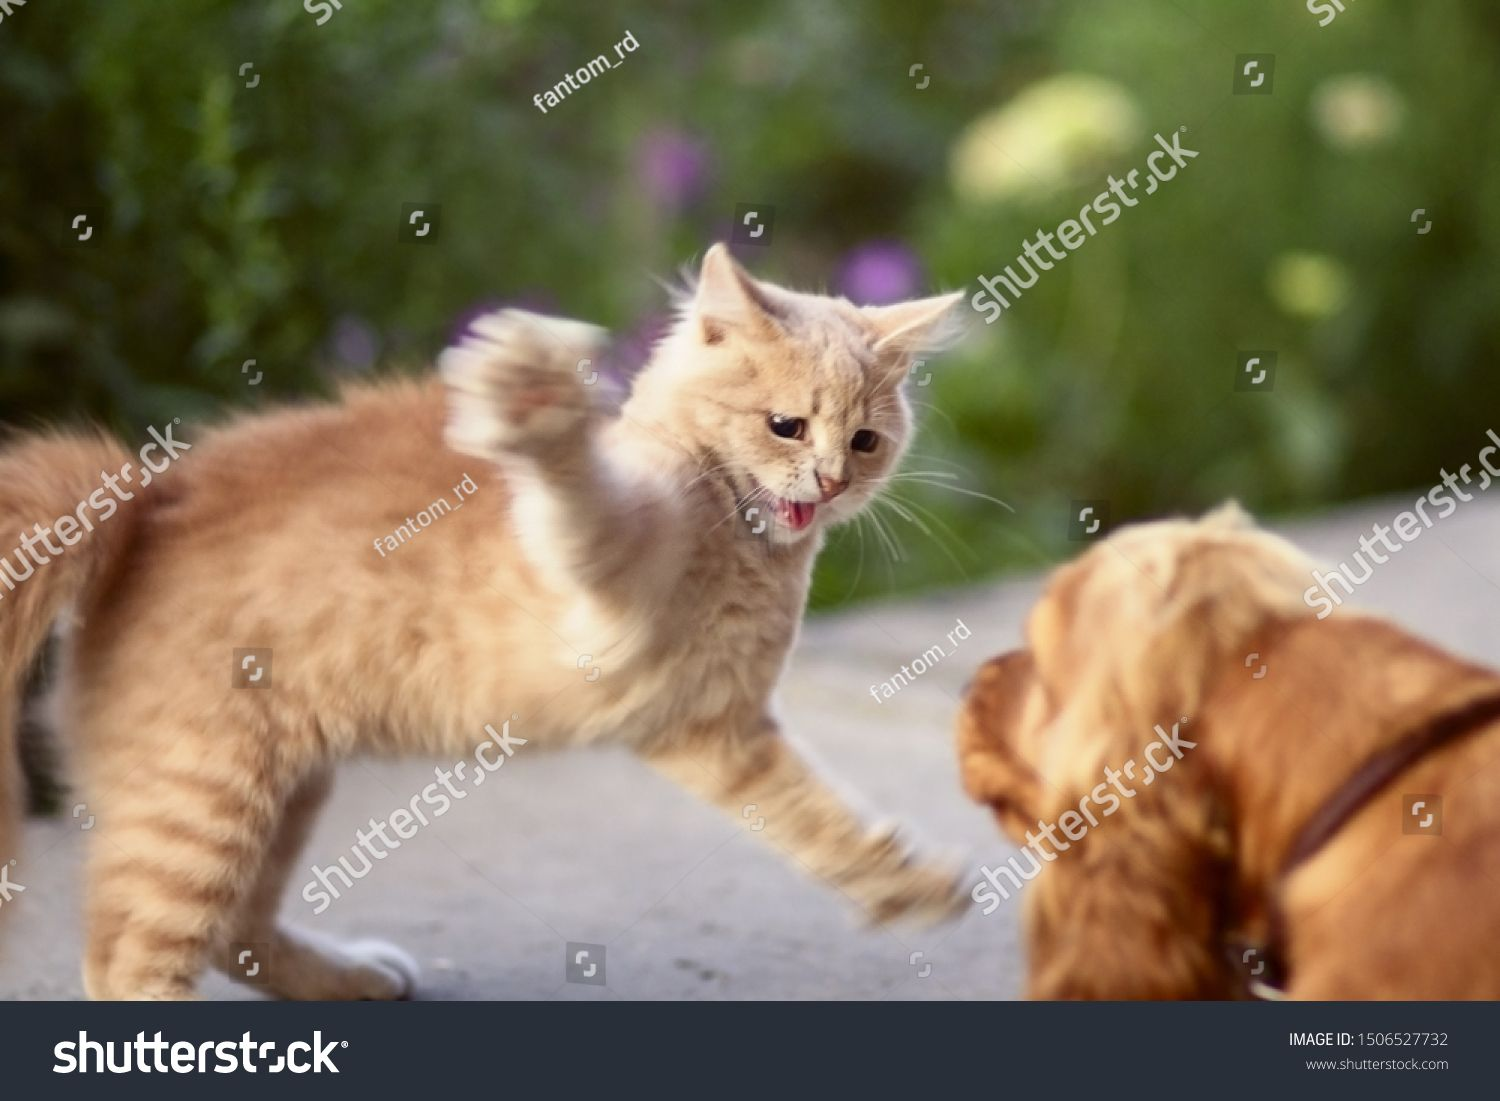 Frightened Cat Defends Itself And Attacking The Ginger Kitten Arched His Back In Fear Of Dog Animal Life Pets Walking Outd Fear Of Dogs Cats Wildlife Animals